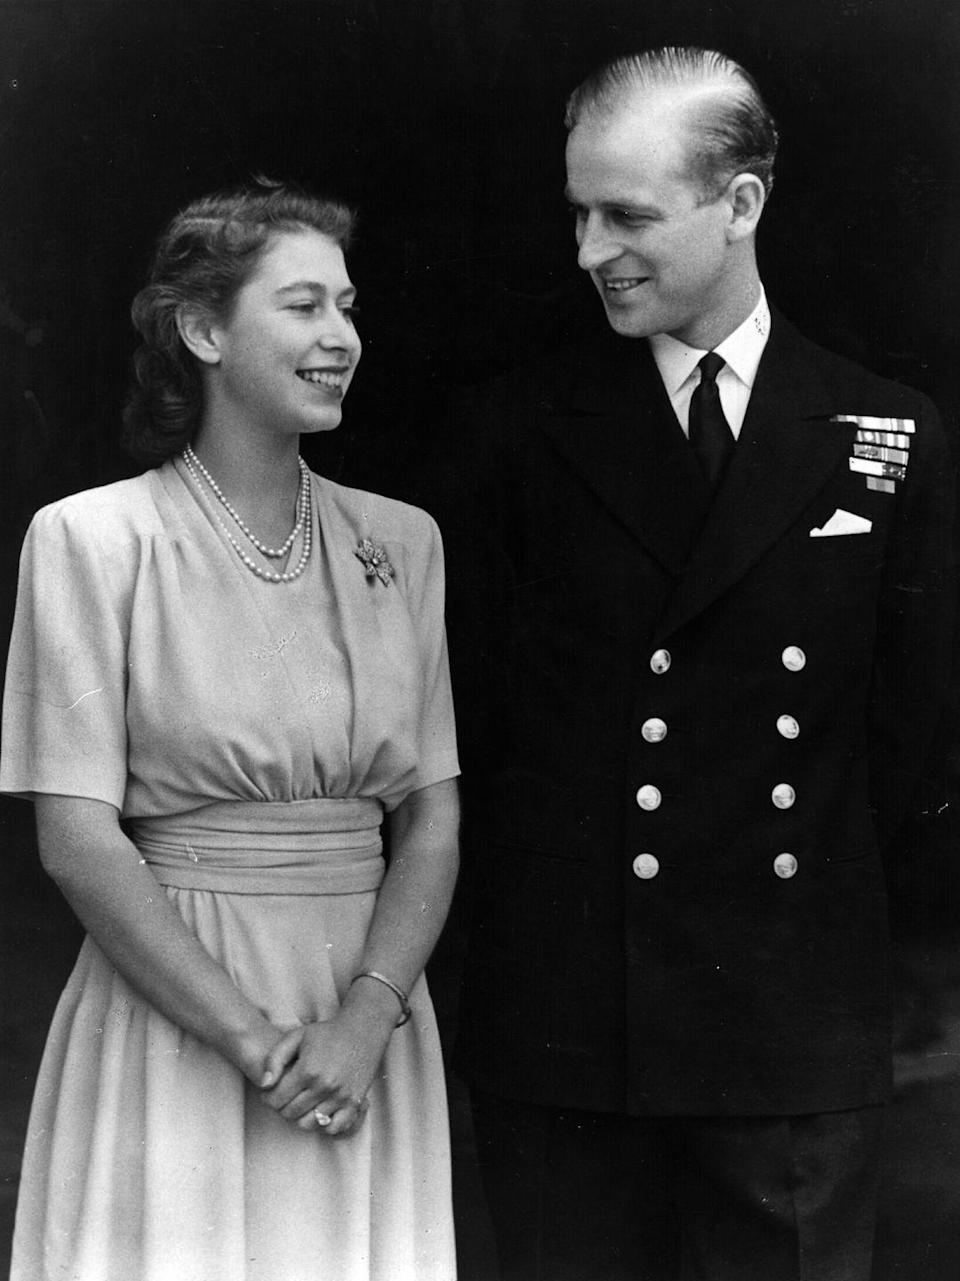 <p>A 13-year-old Princess Elizabeth met an 18-year-old Philip Mountbatten when her family toured the Royal Naval College in 1939. During the visit, he escorted her and her sister, Margaret, his third cousins through Queen Victoria. </p><p>The pair fell in love and began exchanging letters soon after the trip. Eventually, he asked the King for her hand in marriage during the summer of 1946. And their engagement was formally announced to the public on July 10, 1947, at Buckingham Palace in London.</p>